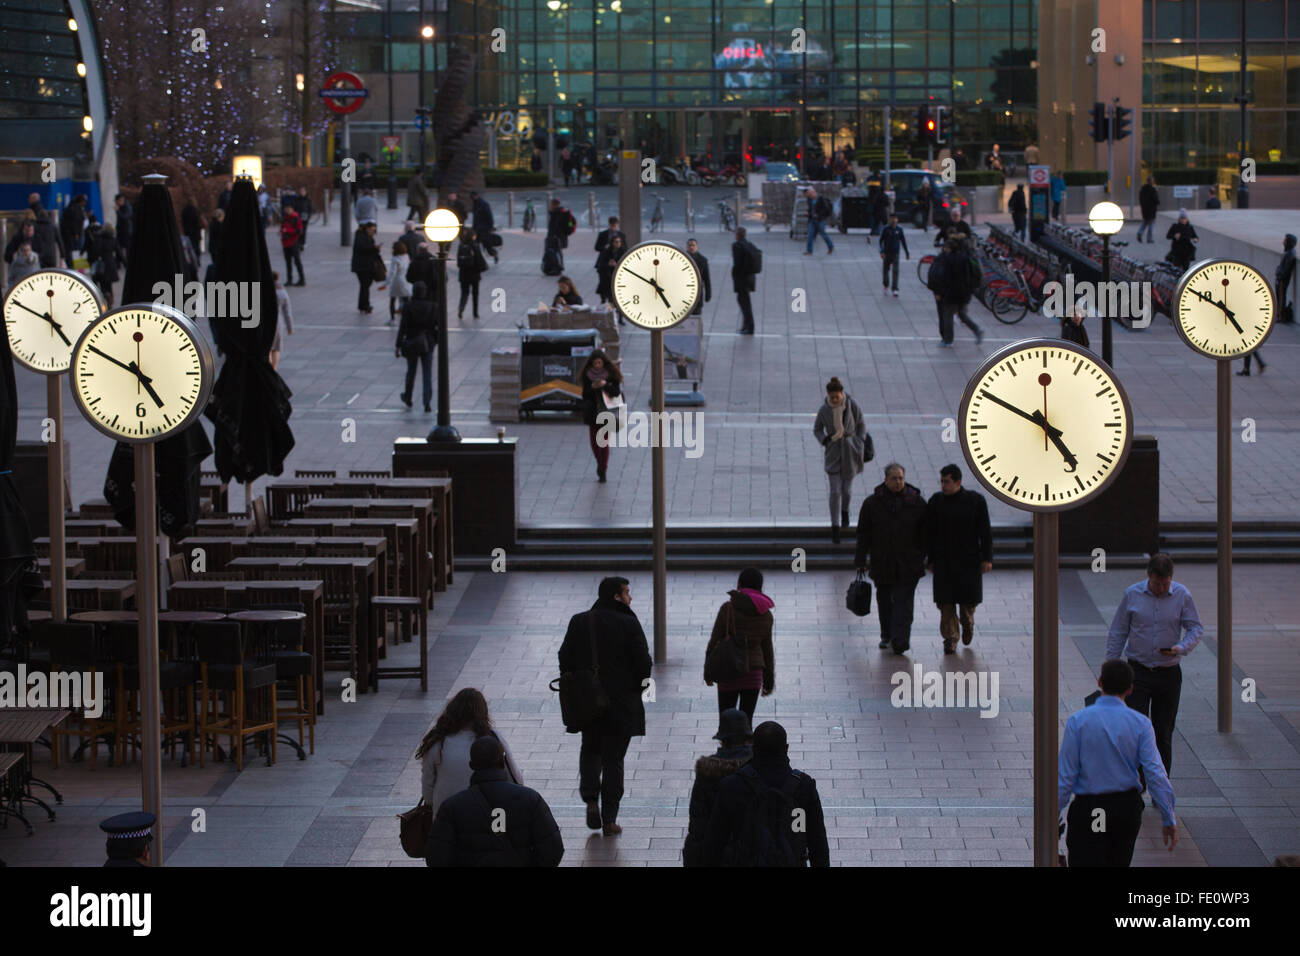 Public clocks outside Reuters Plaza in the heart of the financial district of Canary Wharf in the London Docklands, - Stock Image